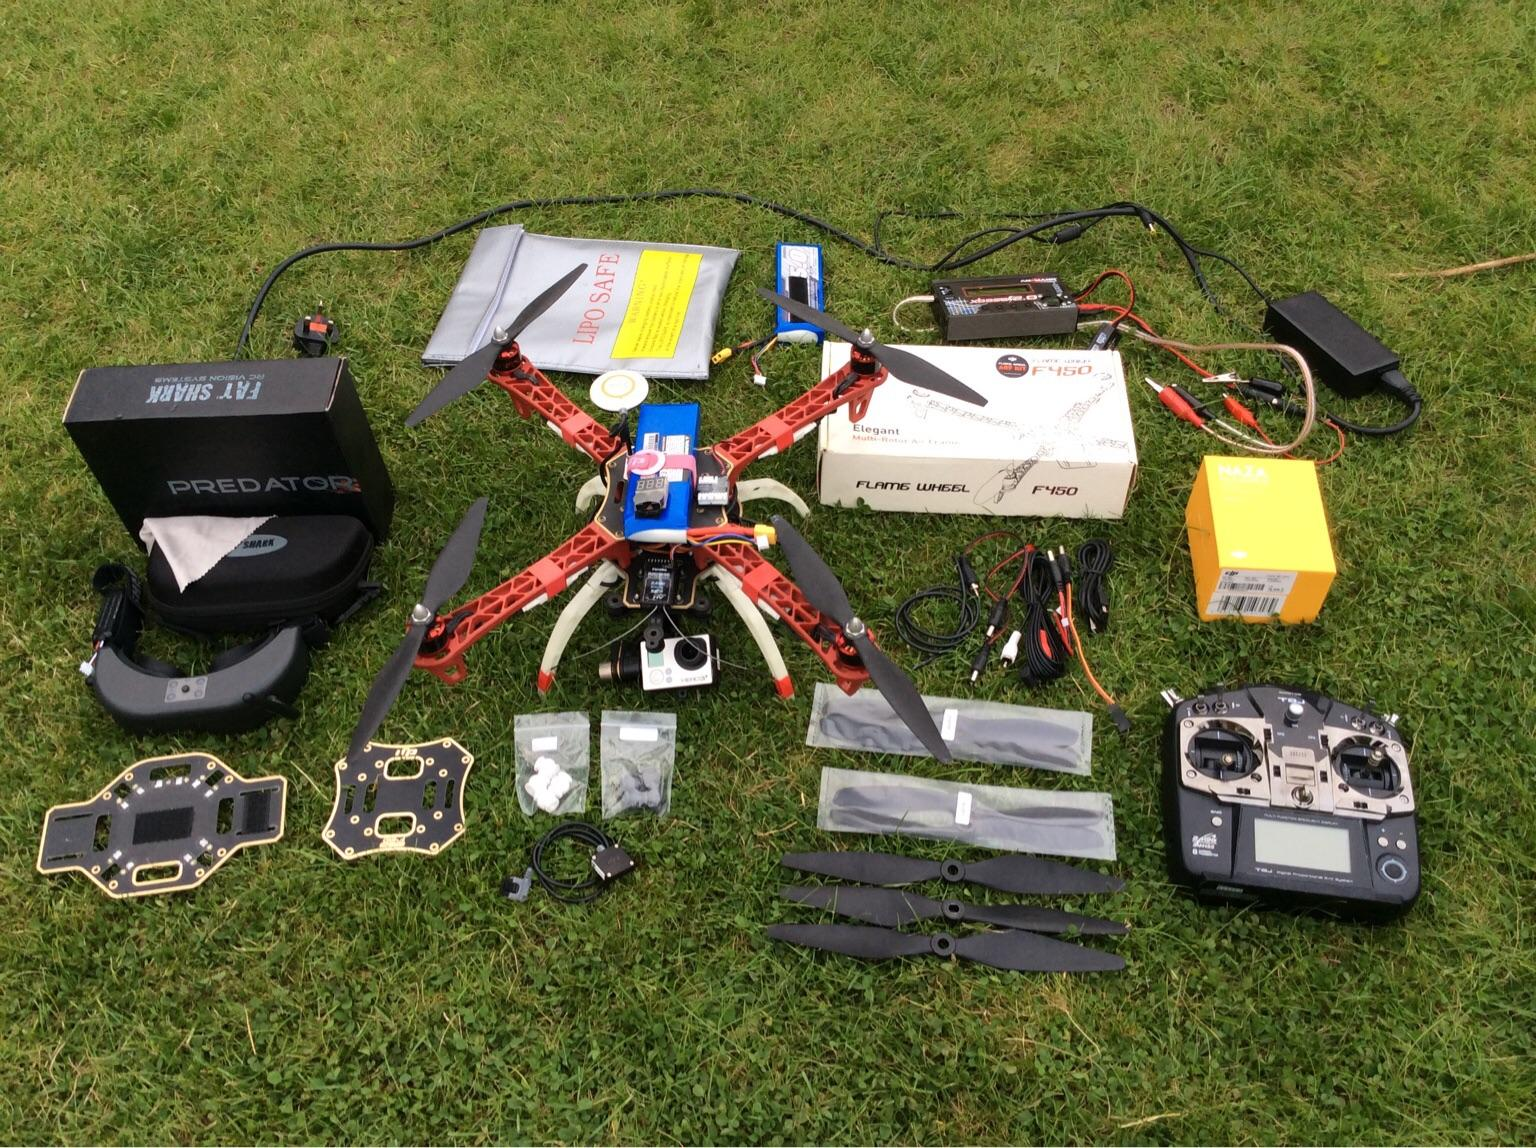 DJI F450 quadcopter with FPV gear in B60 Bromsgrove for